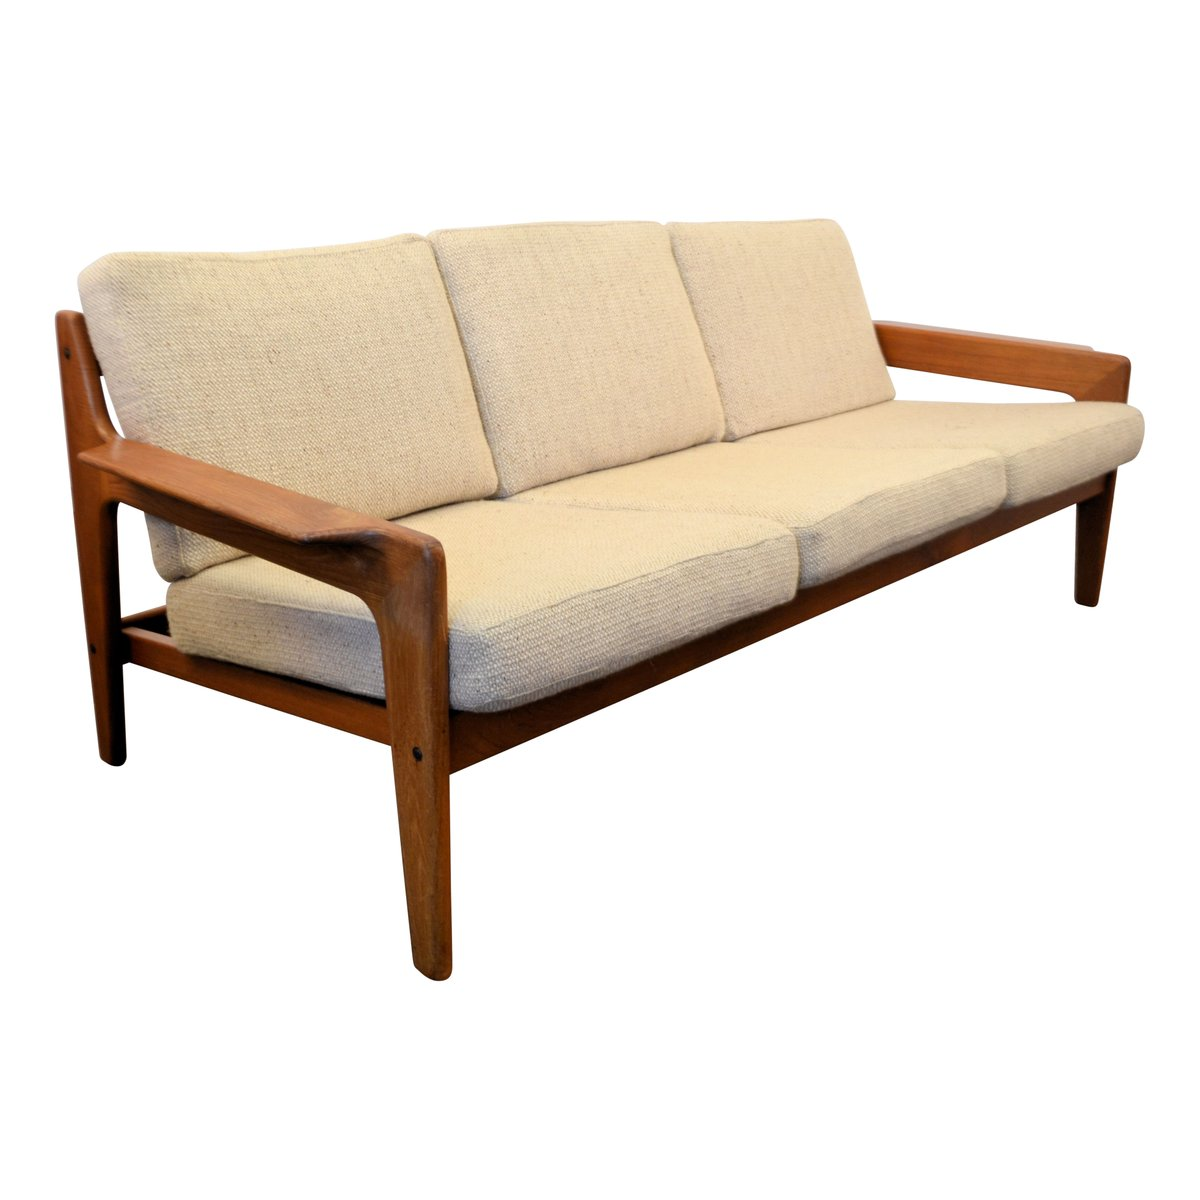 Vintage Danish Teak Frame Sofa By Arne Wahl Iversen For Komfort